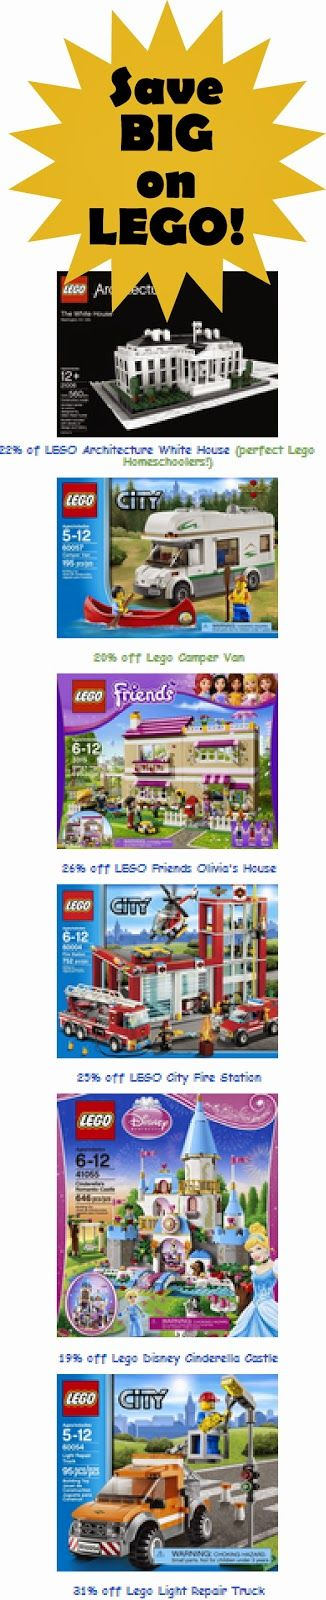 WOW! Lego's on Sale! The Lego white house, Lego Disney Princess Castle, and Lego Firestation have been on our wish list forever! #lego #homeschool #deals #toys